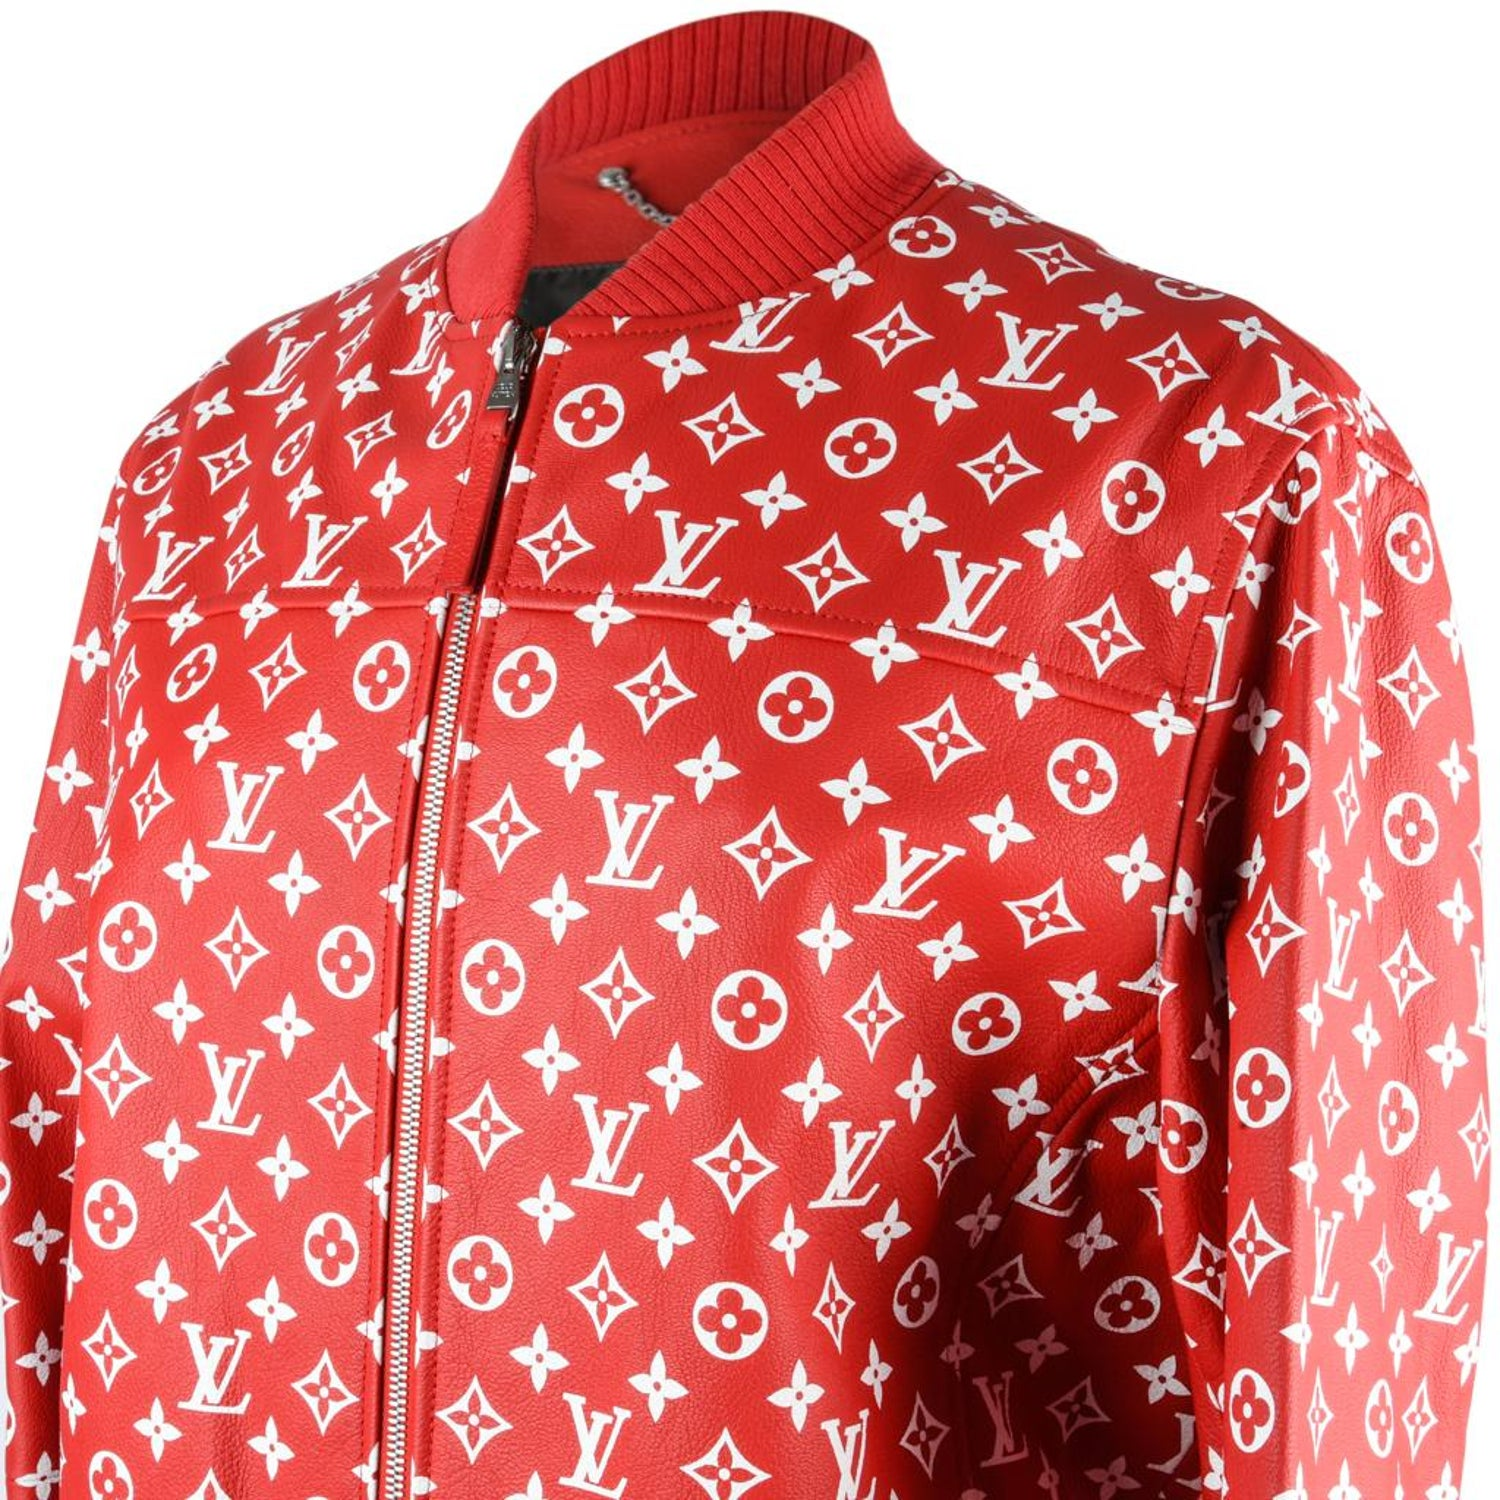 Louis Vuitton Supreme X Leather Er Varsity Jacket Monogram Ltd Ed Size 50 For At 1stdibs